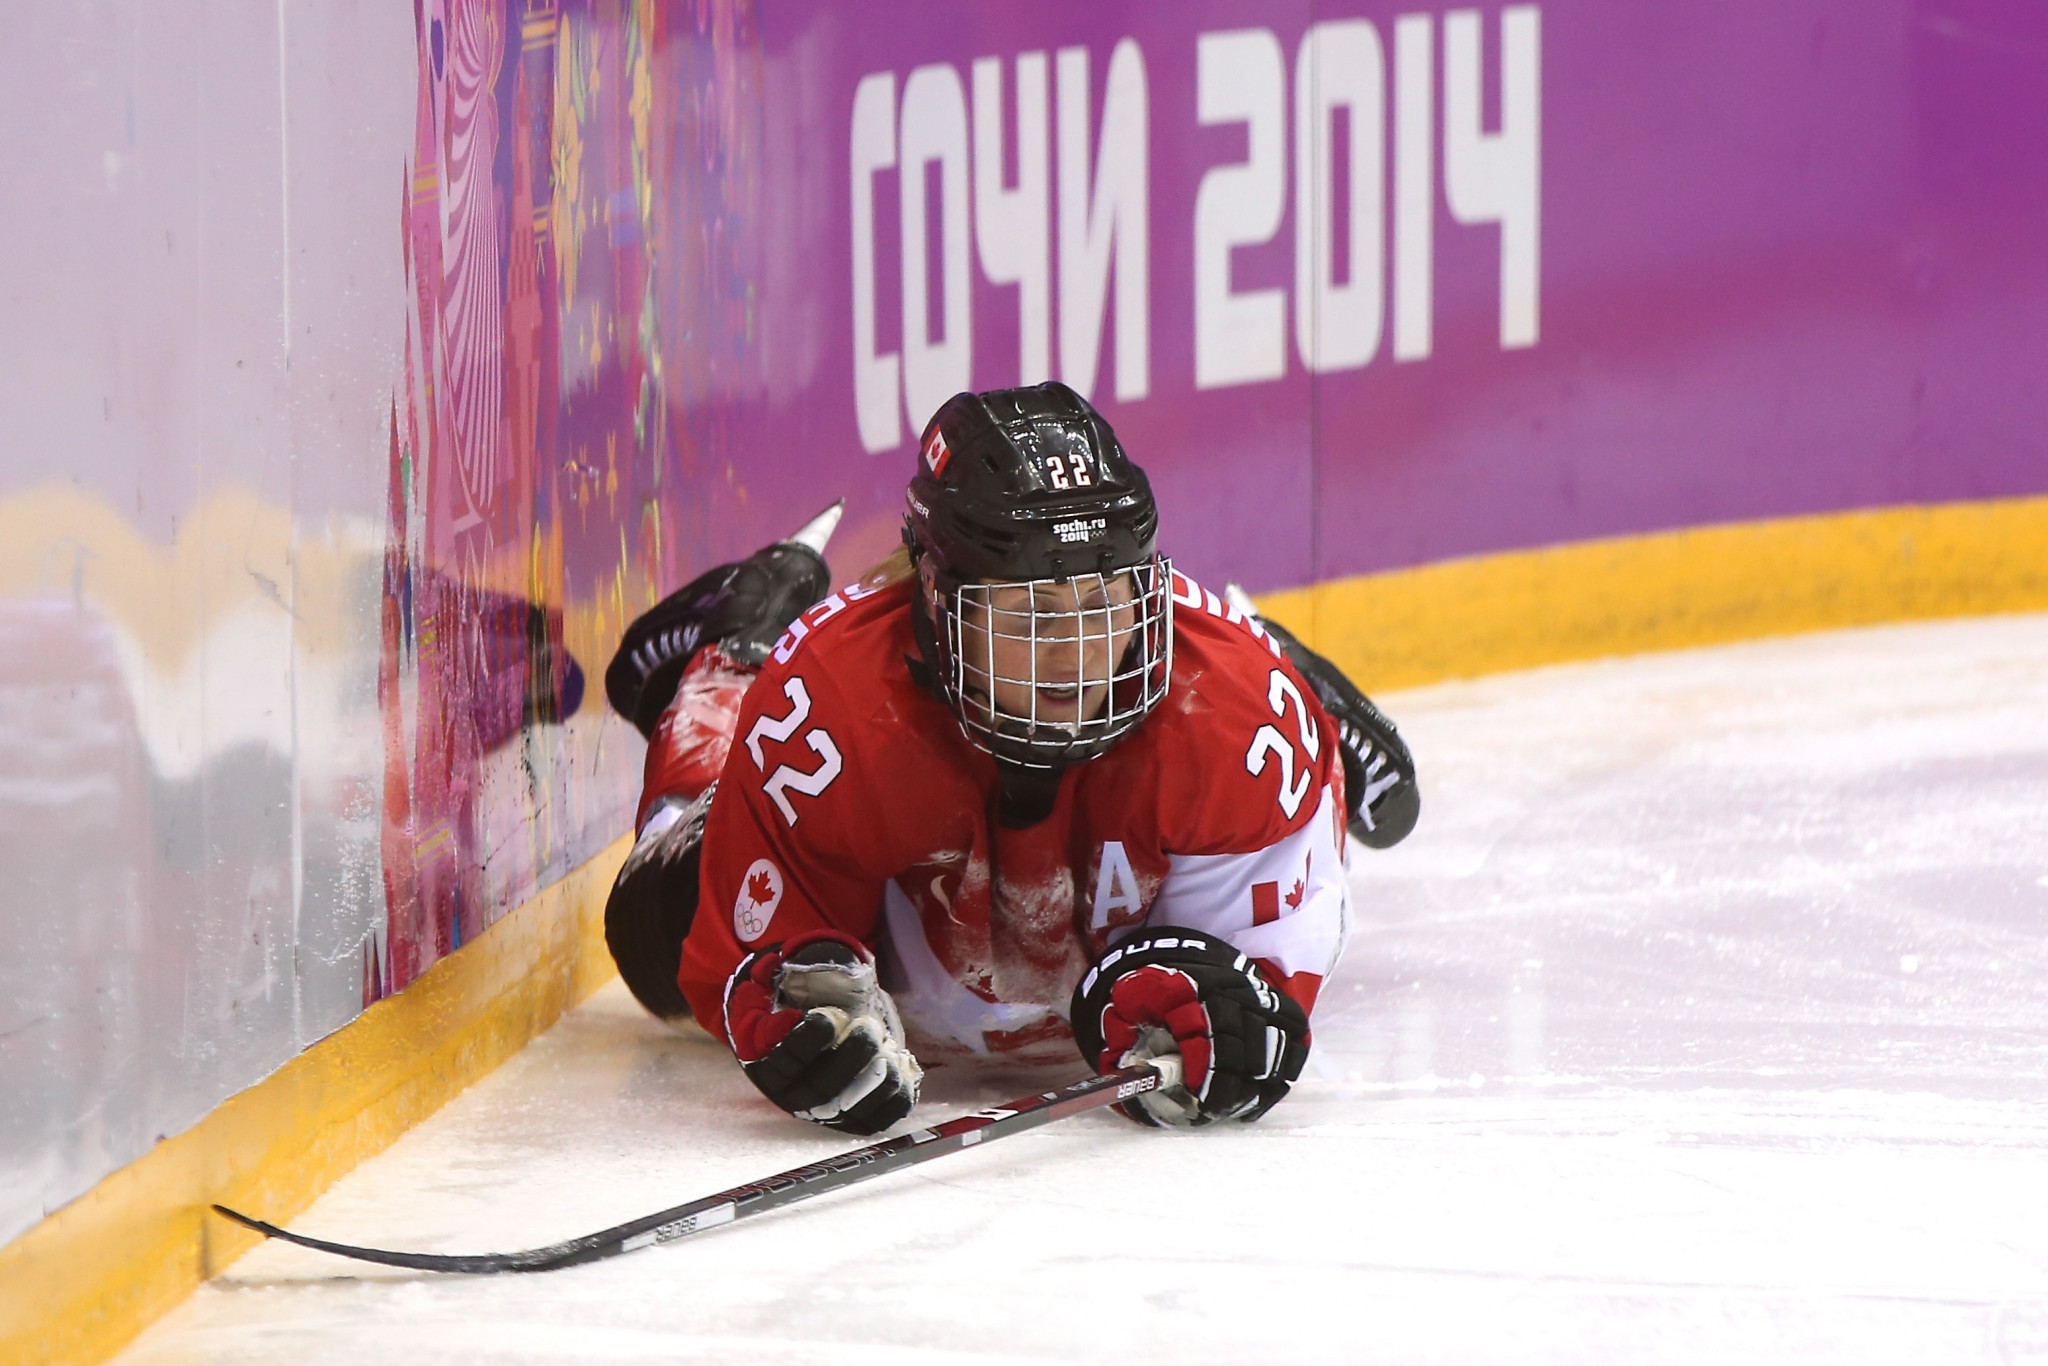 Hayley Wickenheiser has raised concerns about gender equality after the Pan-Korea decision ©Getty Images